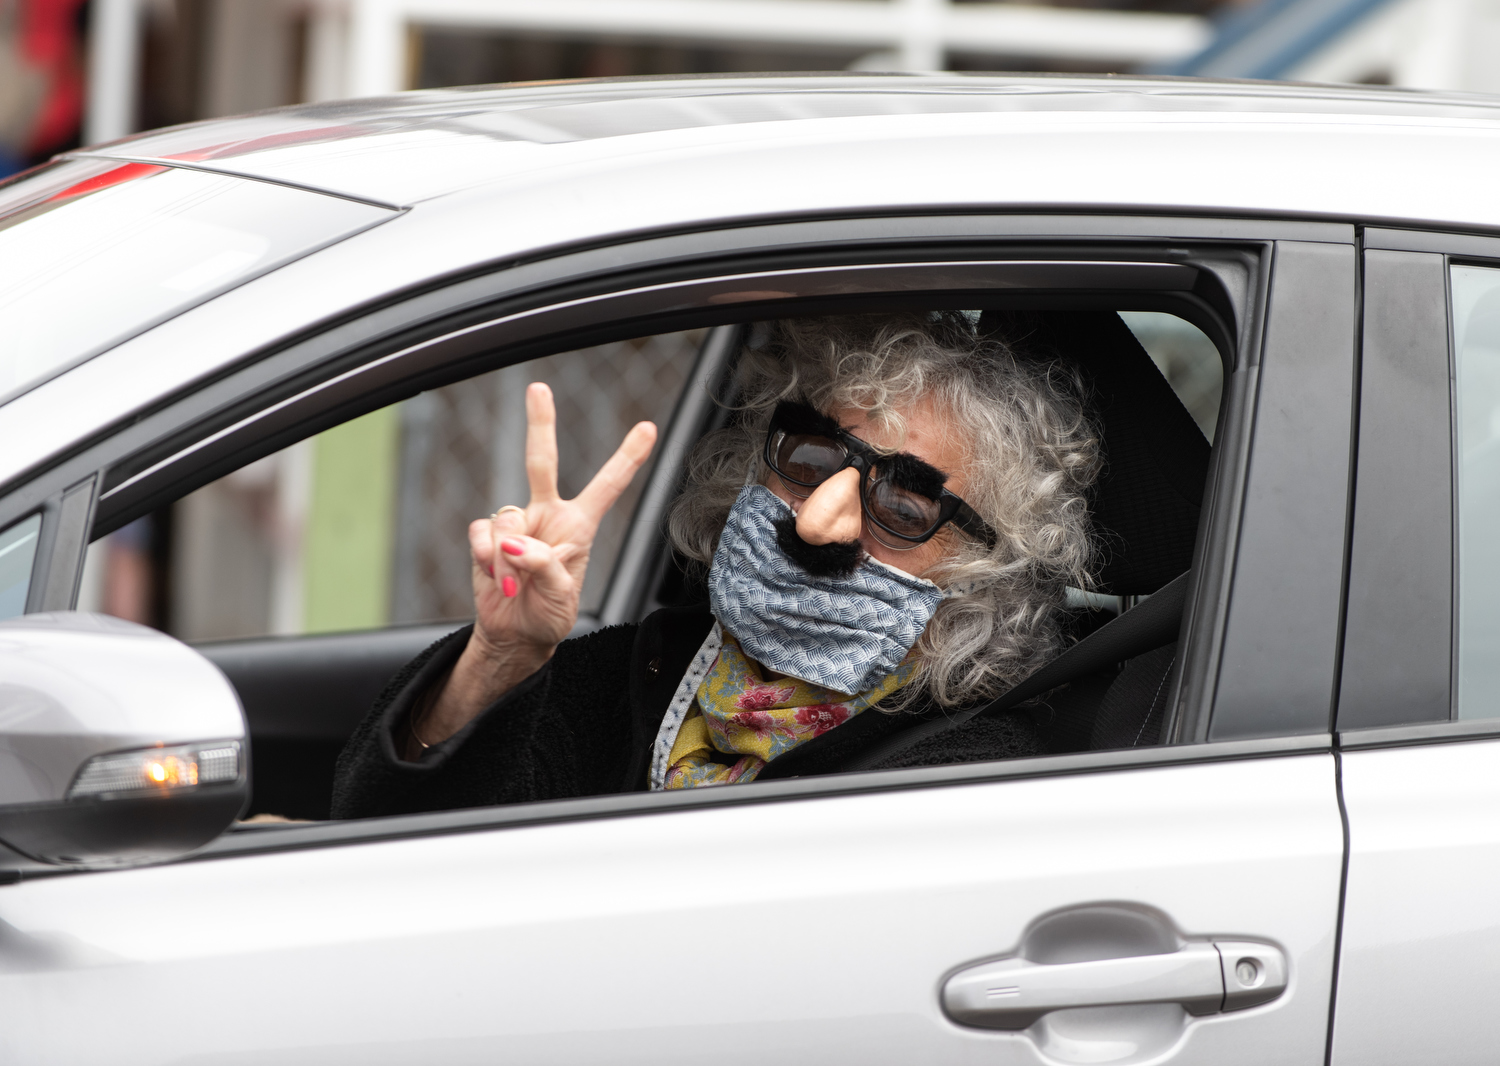 PROVINCETOWN - Canteen customer Corinne Sirna flashes a peace sign after picking up her grocery order on Tuesday, April 21, 2020. Anderson and Rossignon have received over $11,000 in donations to go toward free grocery orders for those who need assistance.